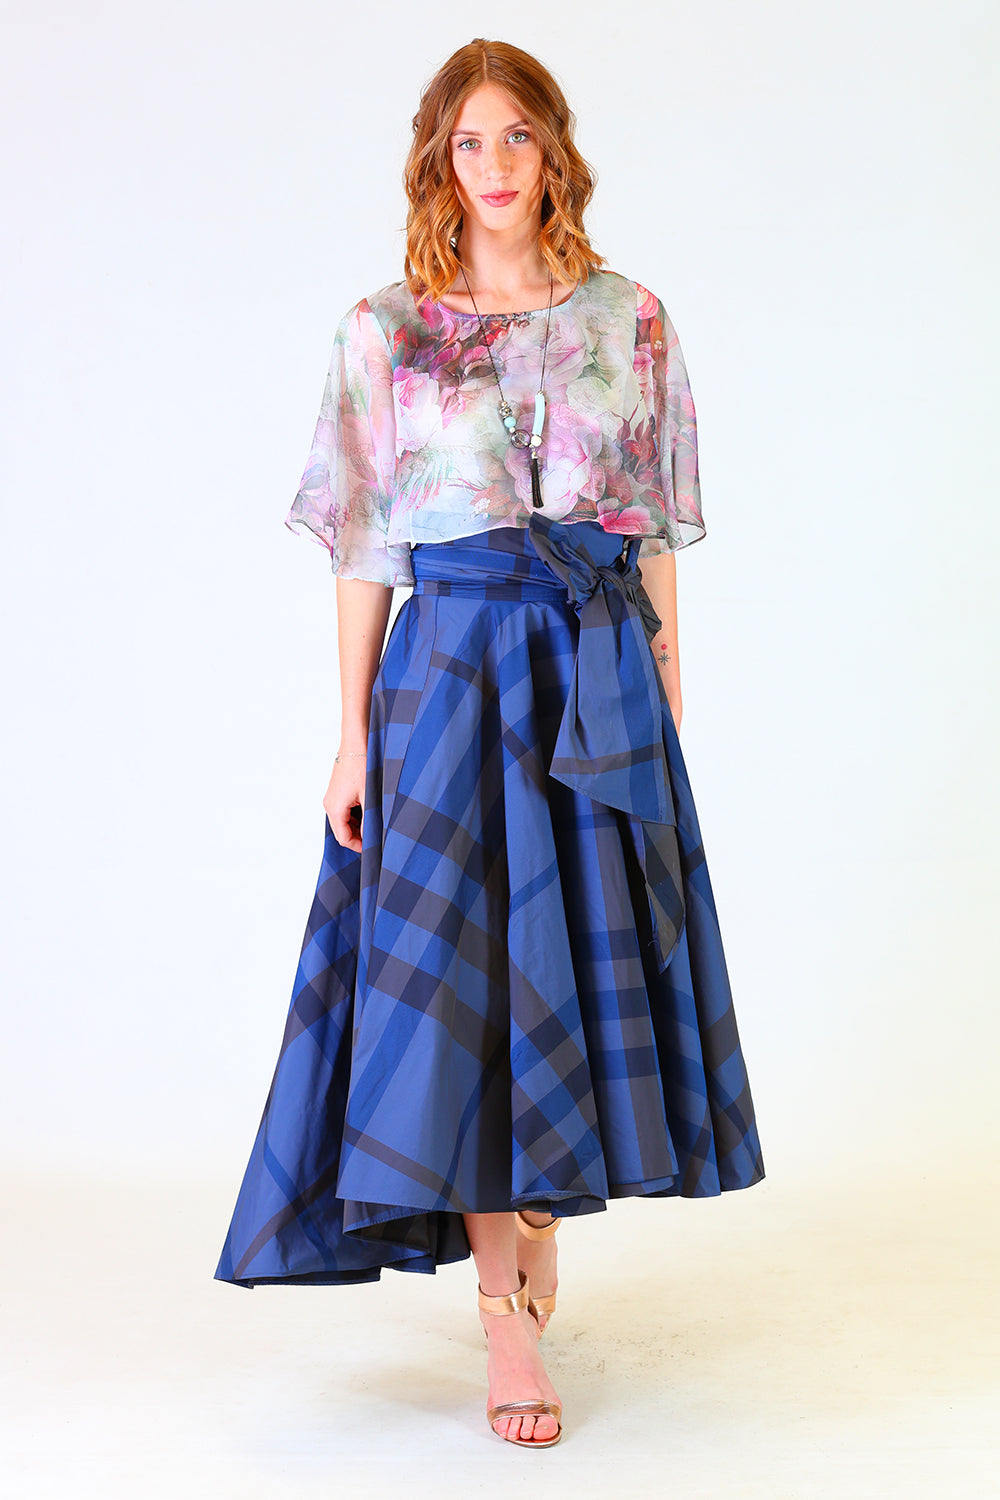 Miriam Mel Skirt | Summer Dresses Skirts | New Zealand Fashion | Annah Stretton